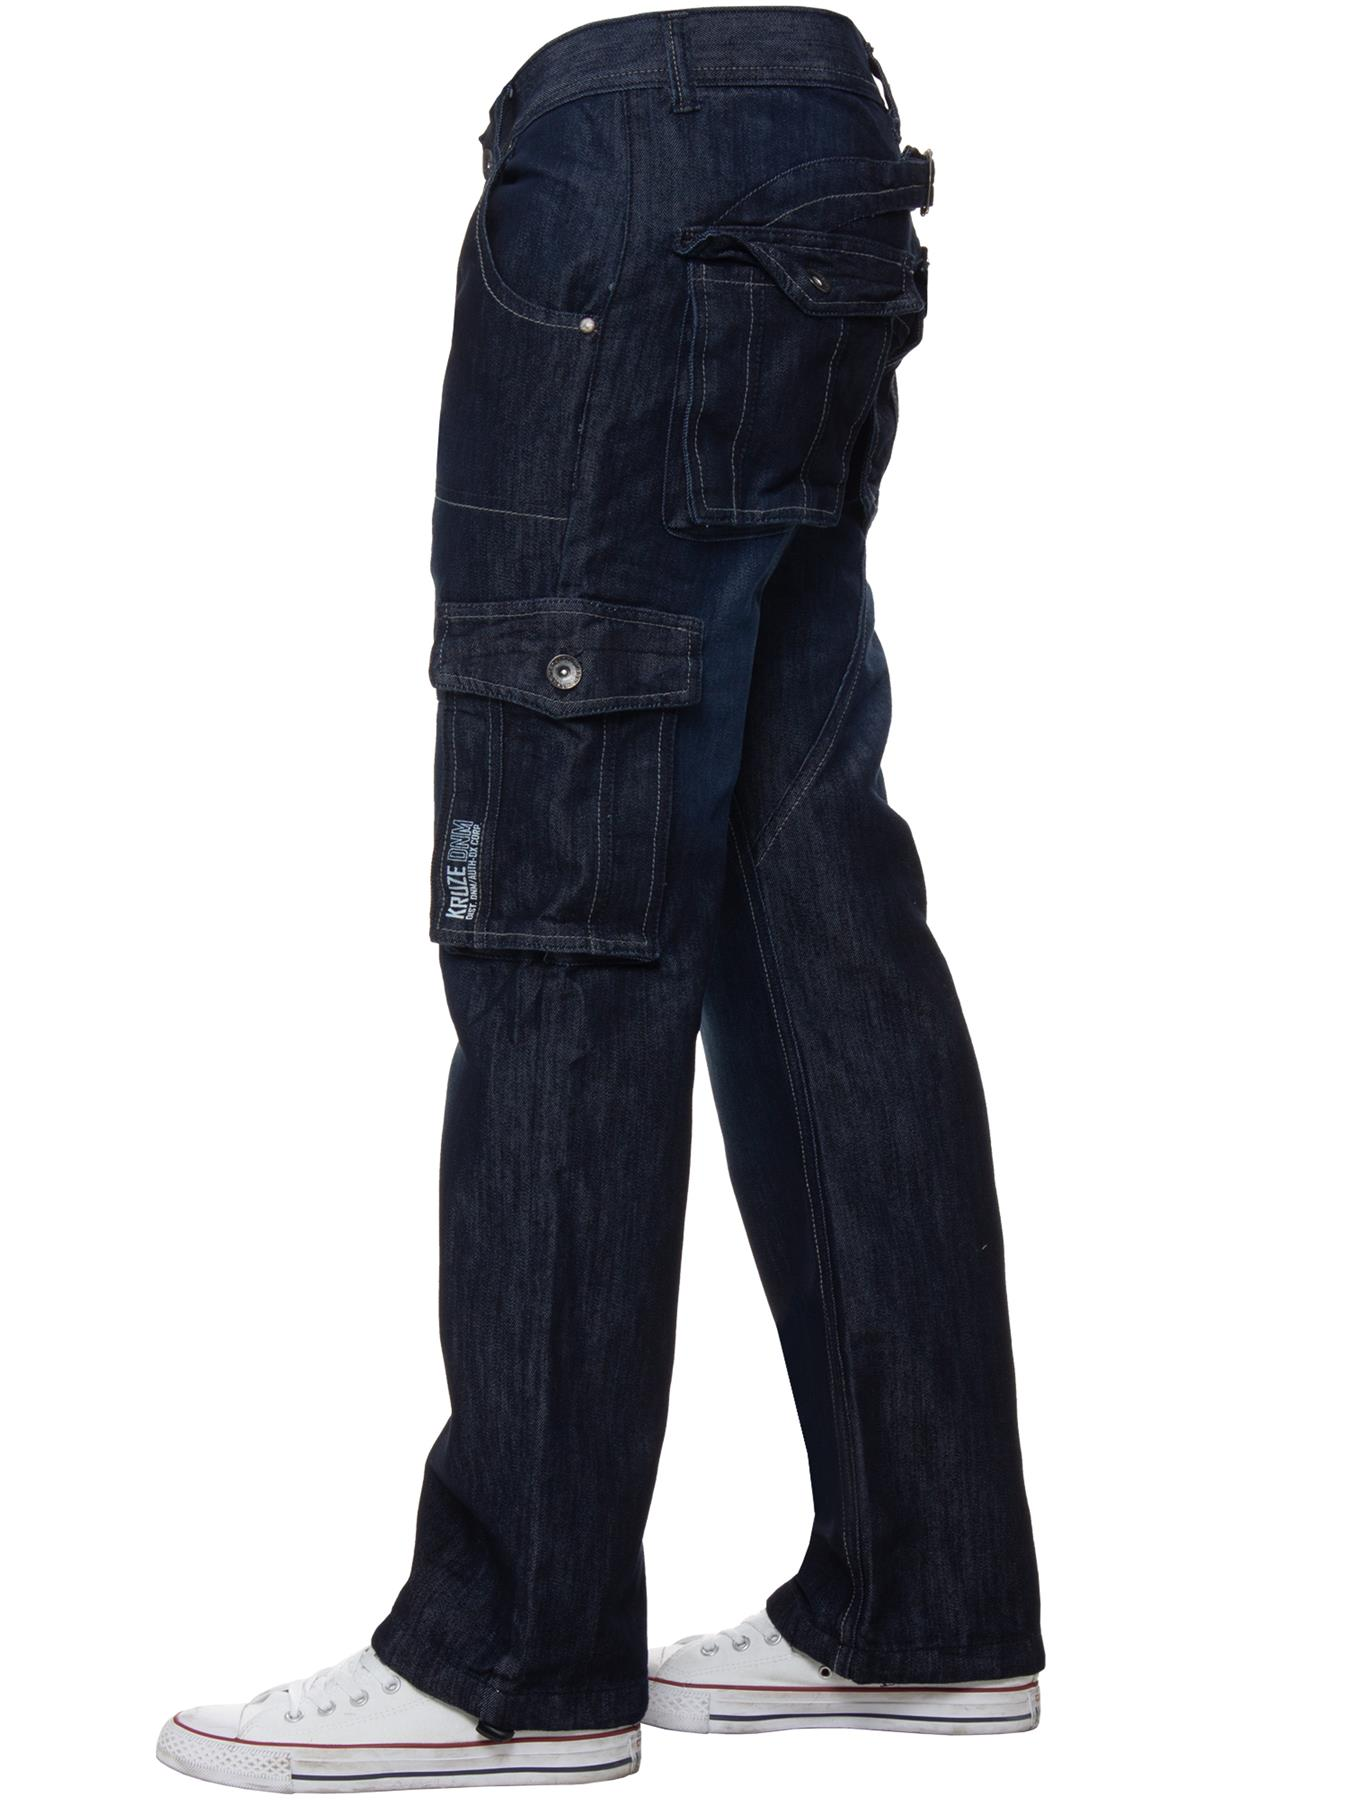 Kruze-Mens-Cargo-Combat-Jeans-Casual-Work-Denim-Pants-Big-Tall-All-Waist-Sizes thumbnail 24